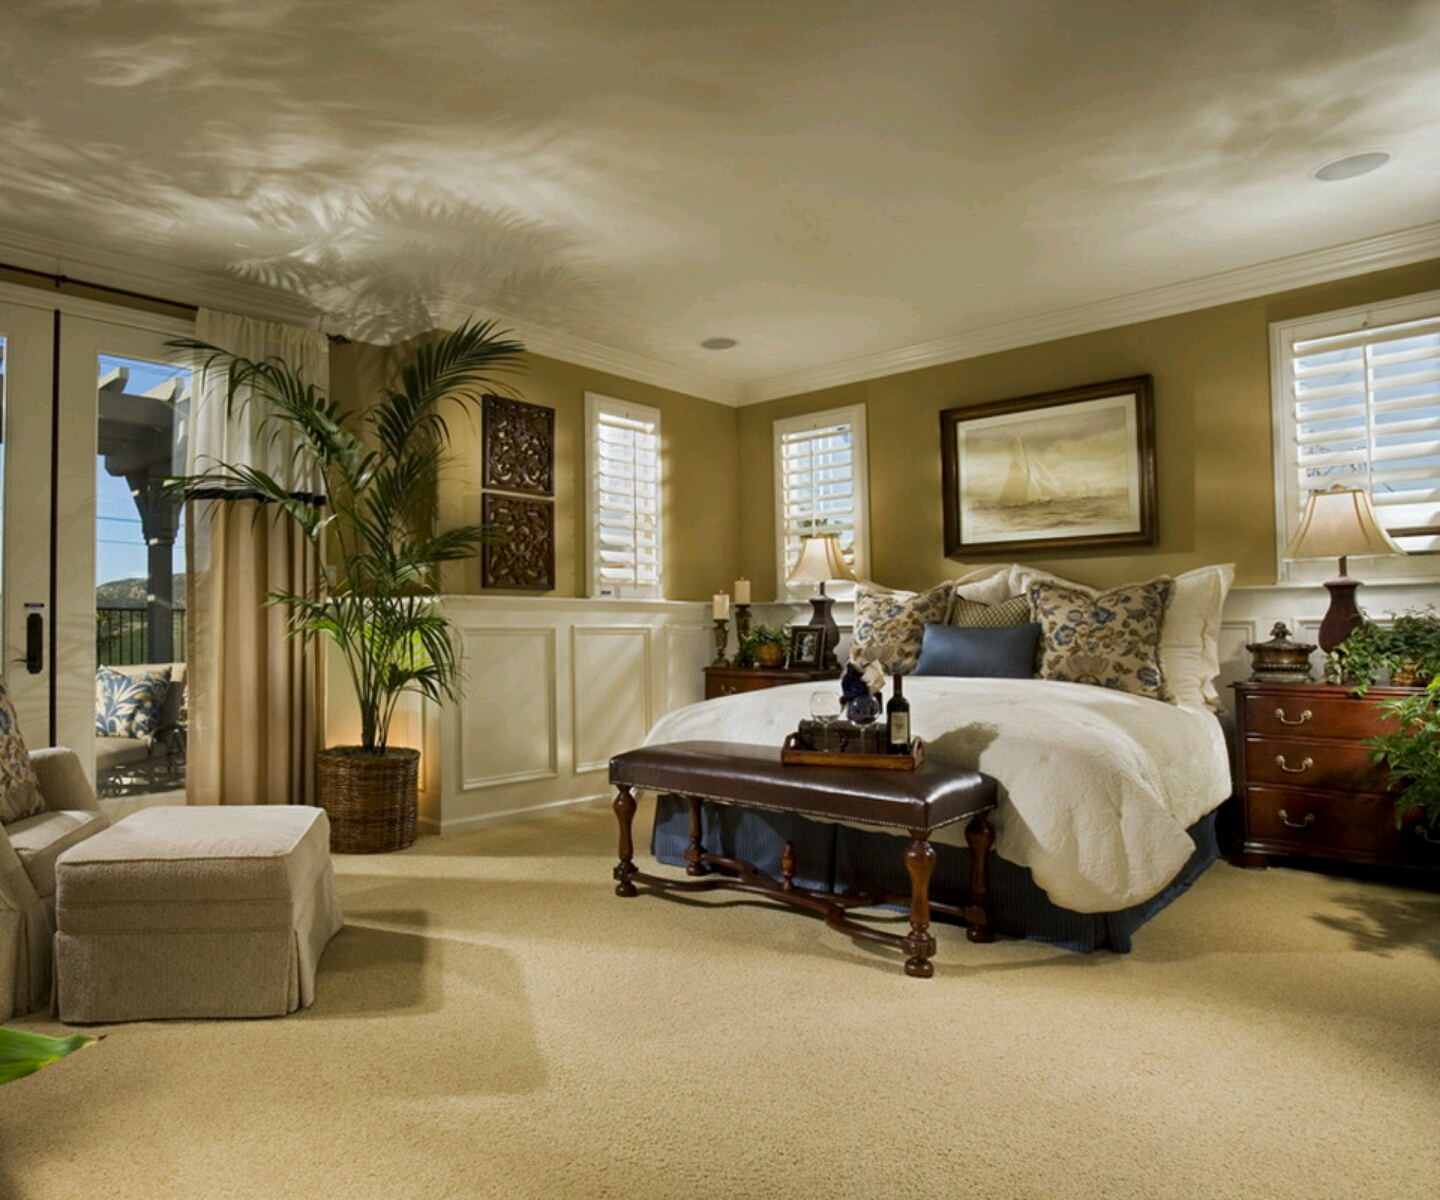 Home Design Ideas: New Home Designs Latest.: Modern Homes Bedrooms Designs